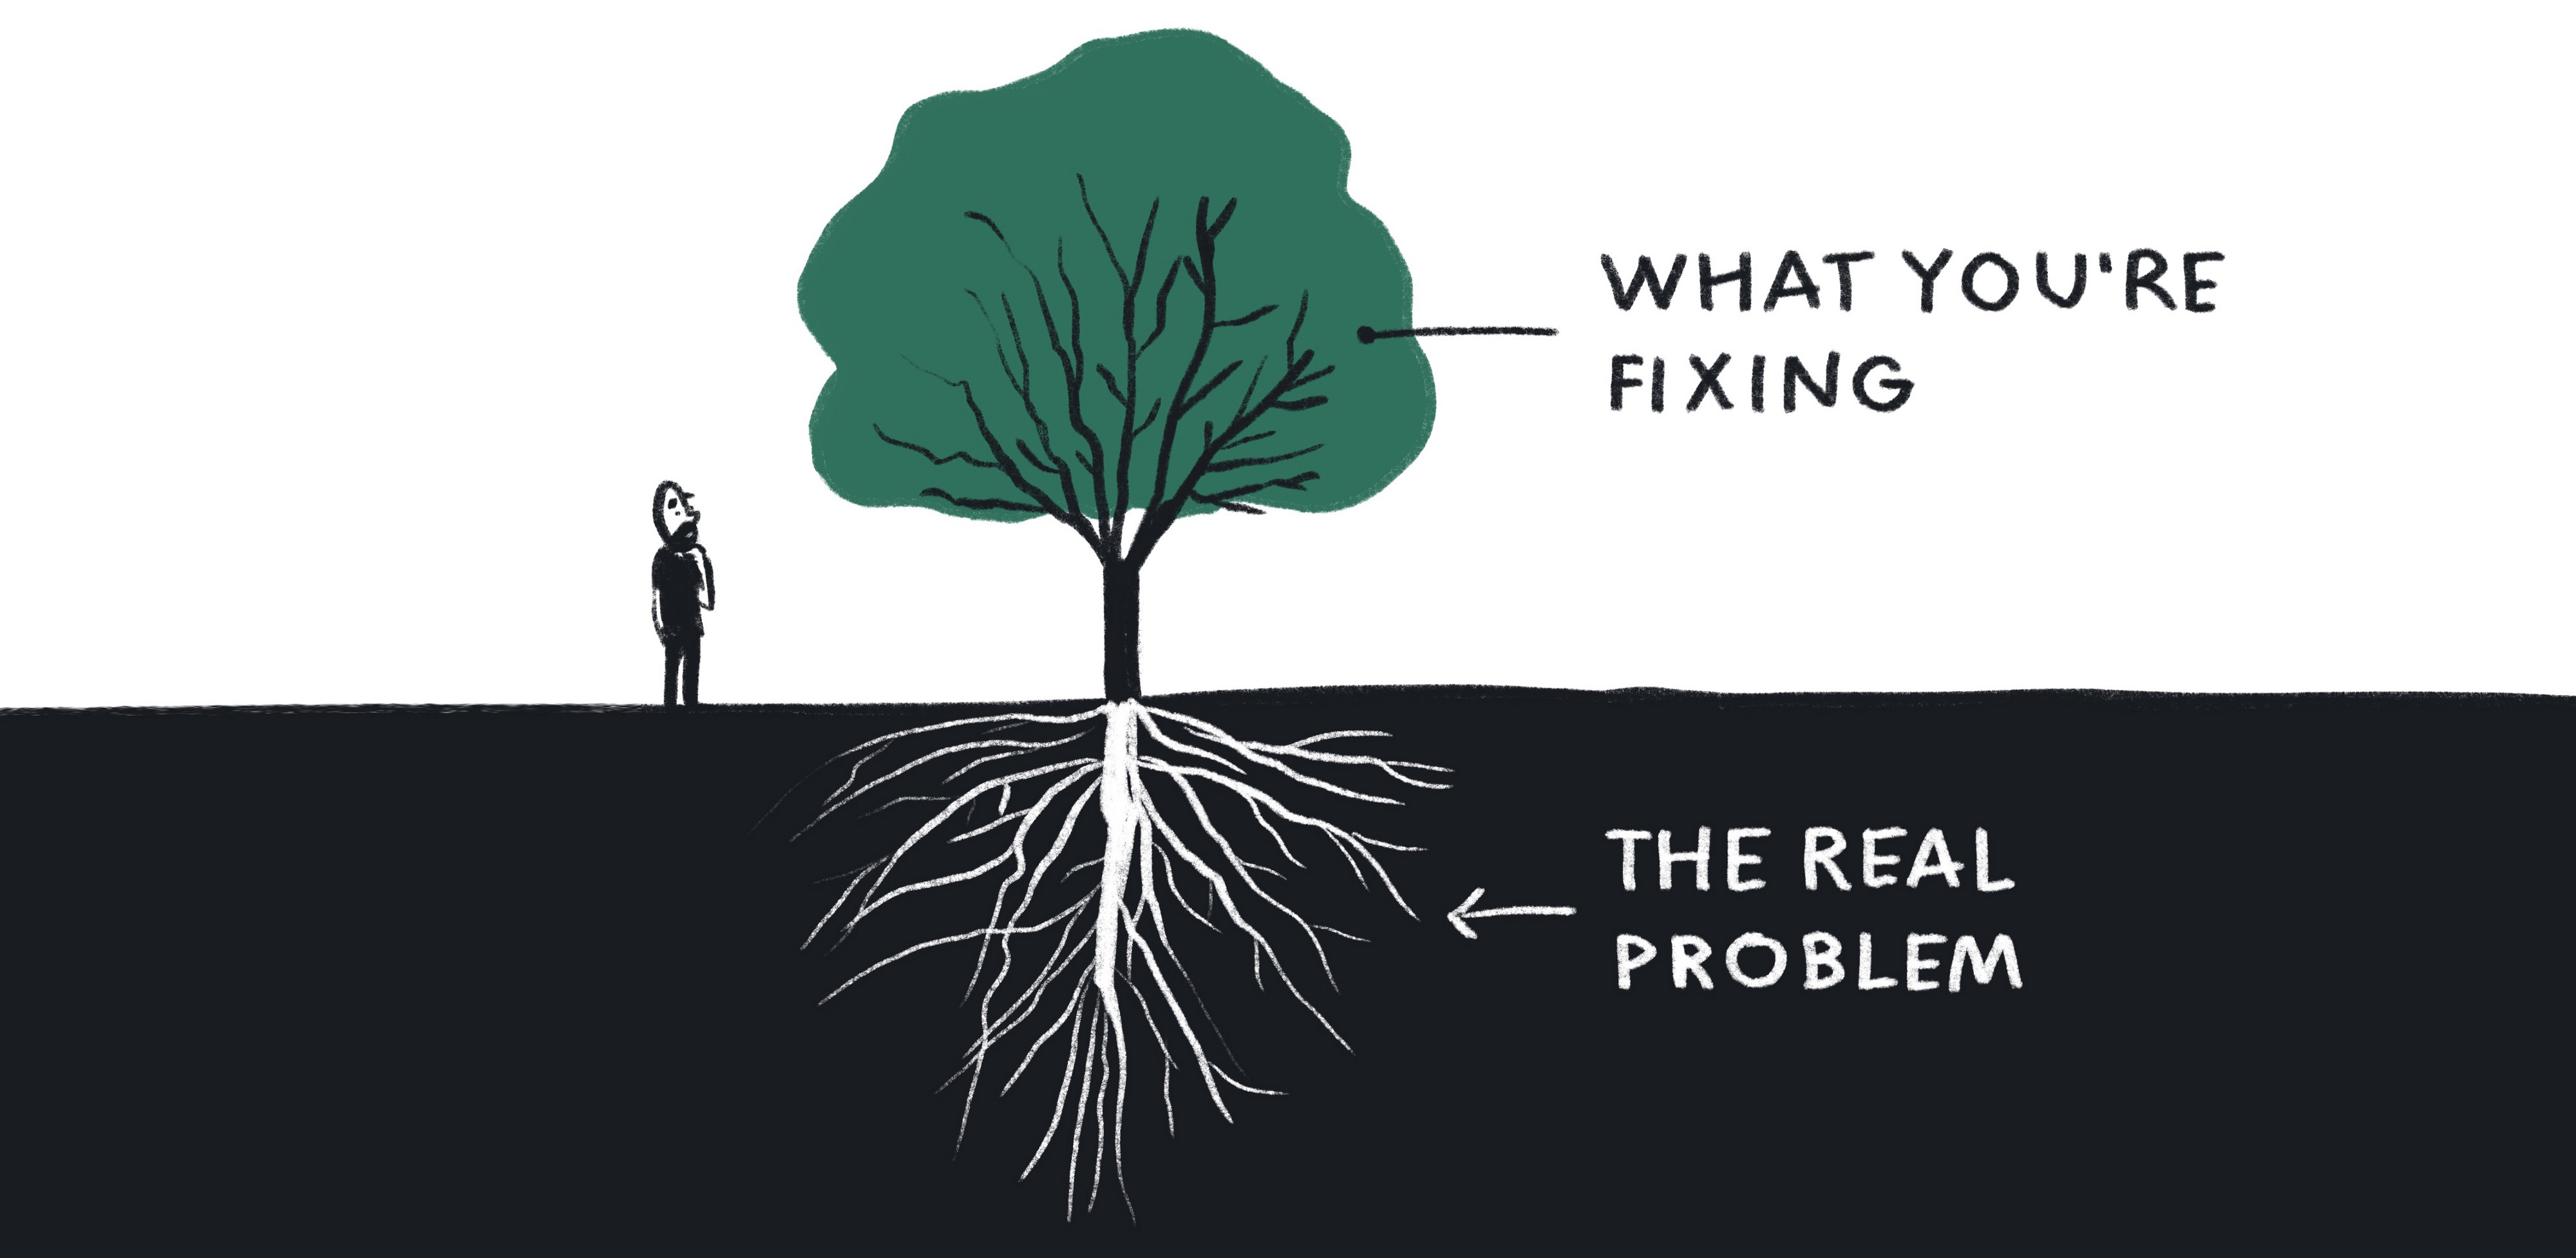 A tree — representing what you're trying to fix, and its roots representing the real problem.